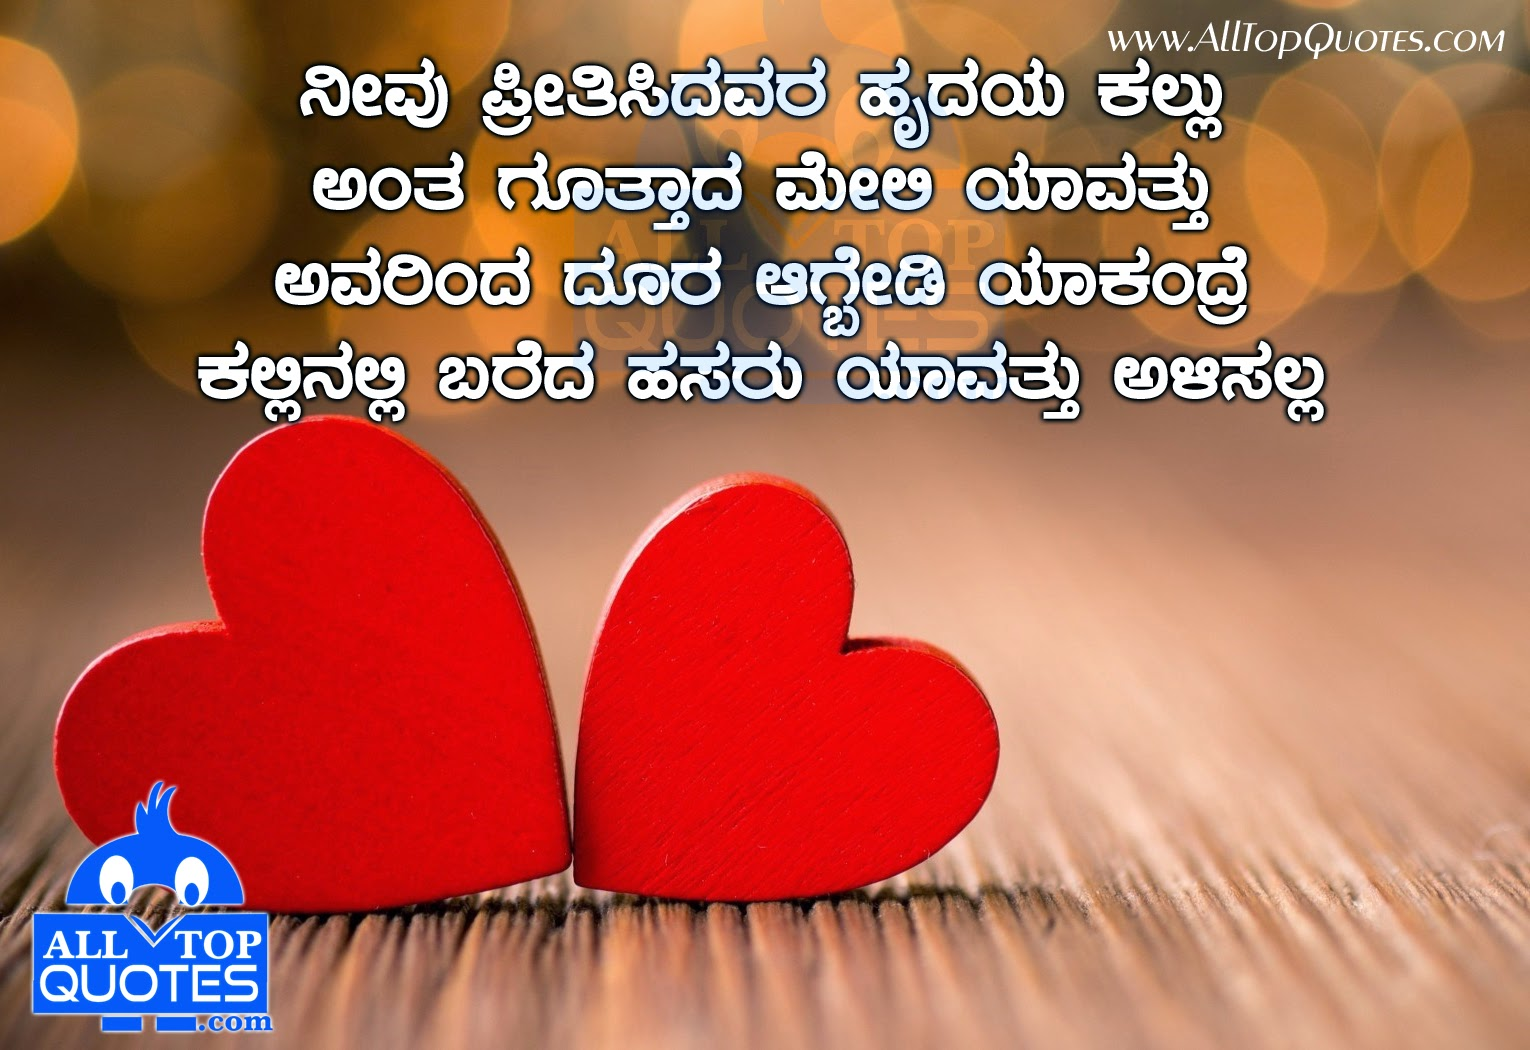 Beautiful Lover Quotation in Kannada | All Top Quotes | Telugu Quotes ...